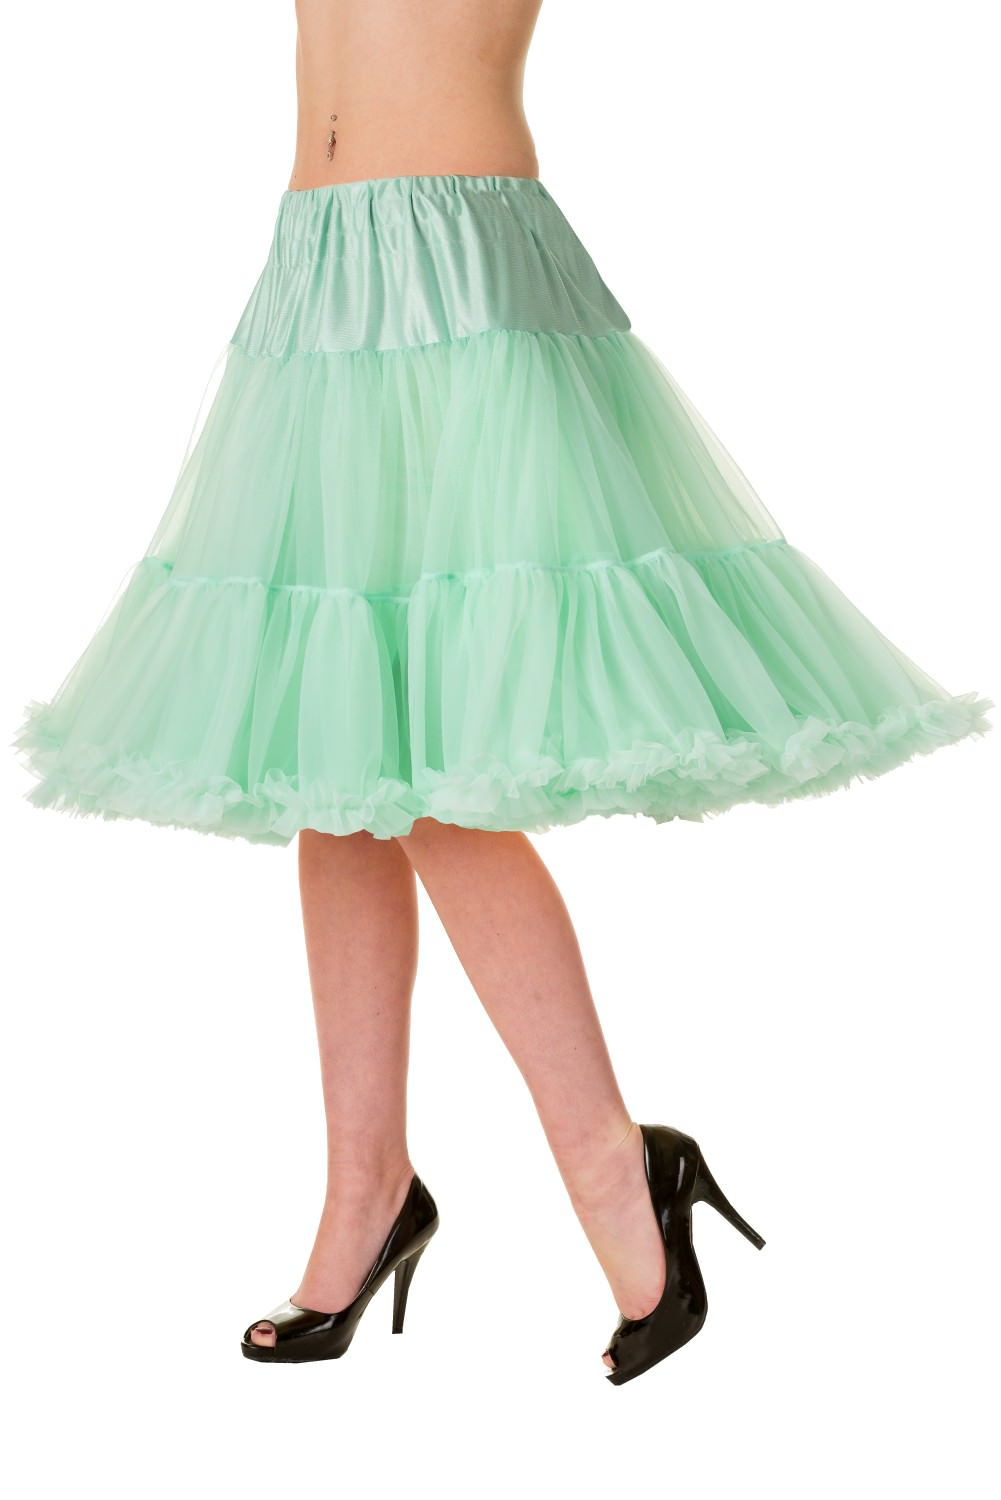 Banned Retro 50s Walkabout Mint Petticoat